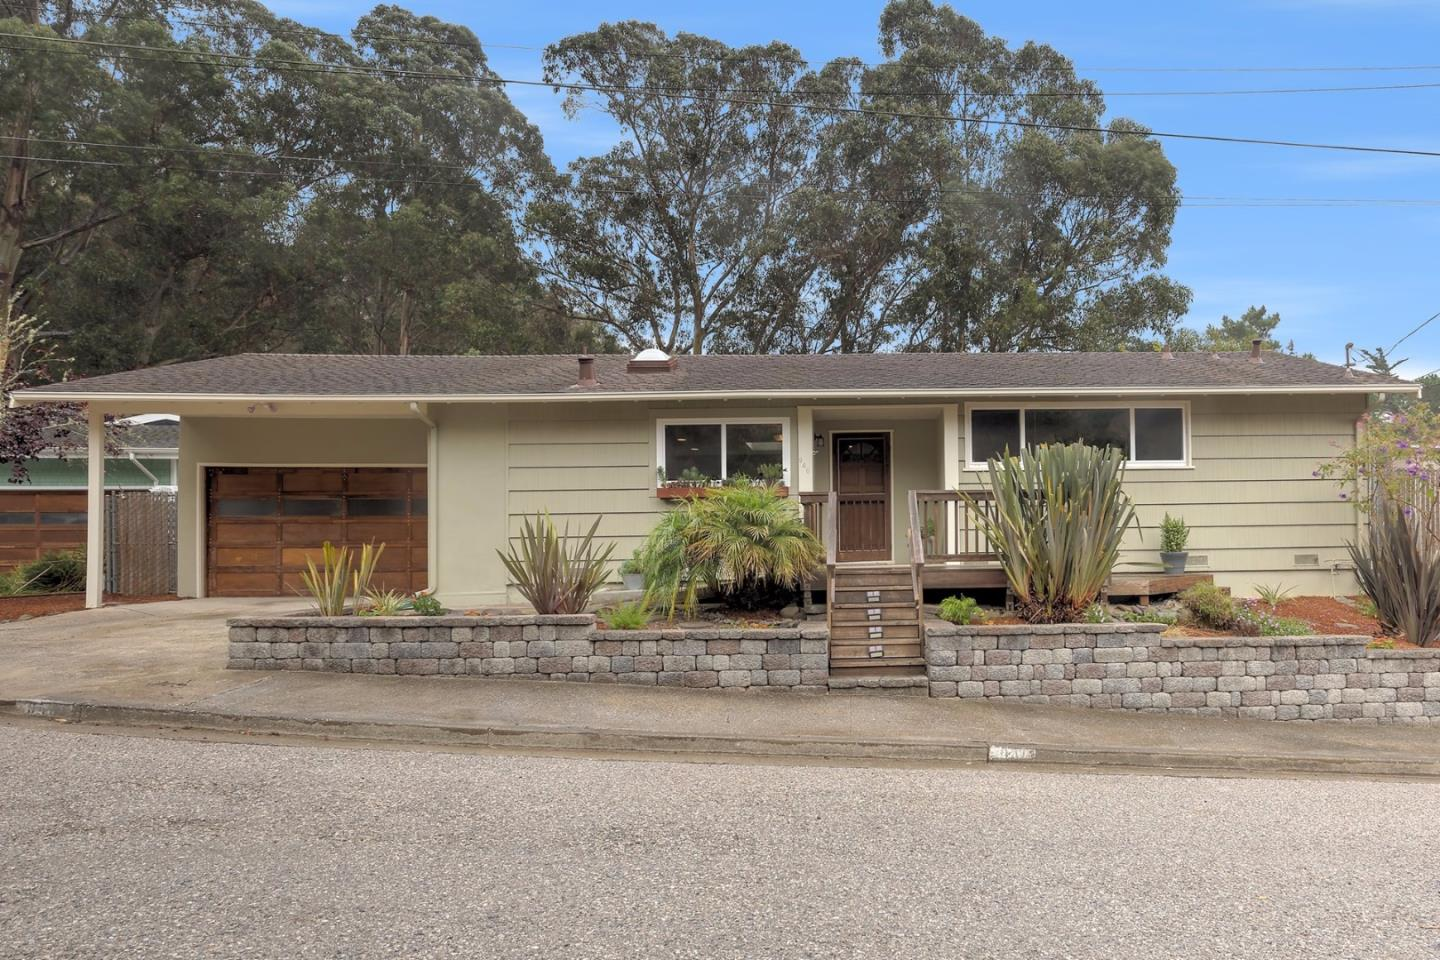 940 corona dr pacifica ca 94044 mls 81679112 for Pacifica house